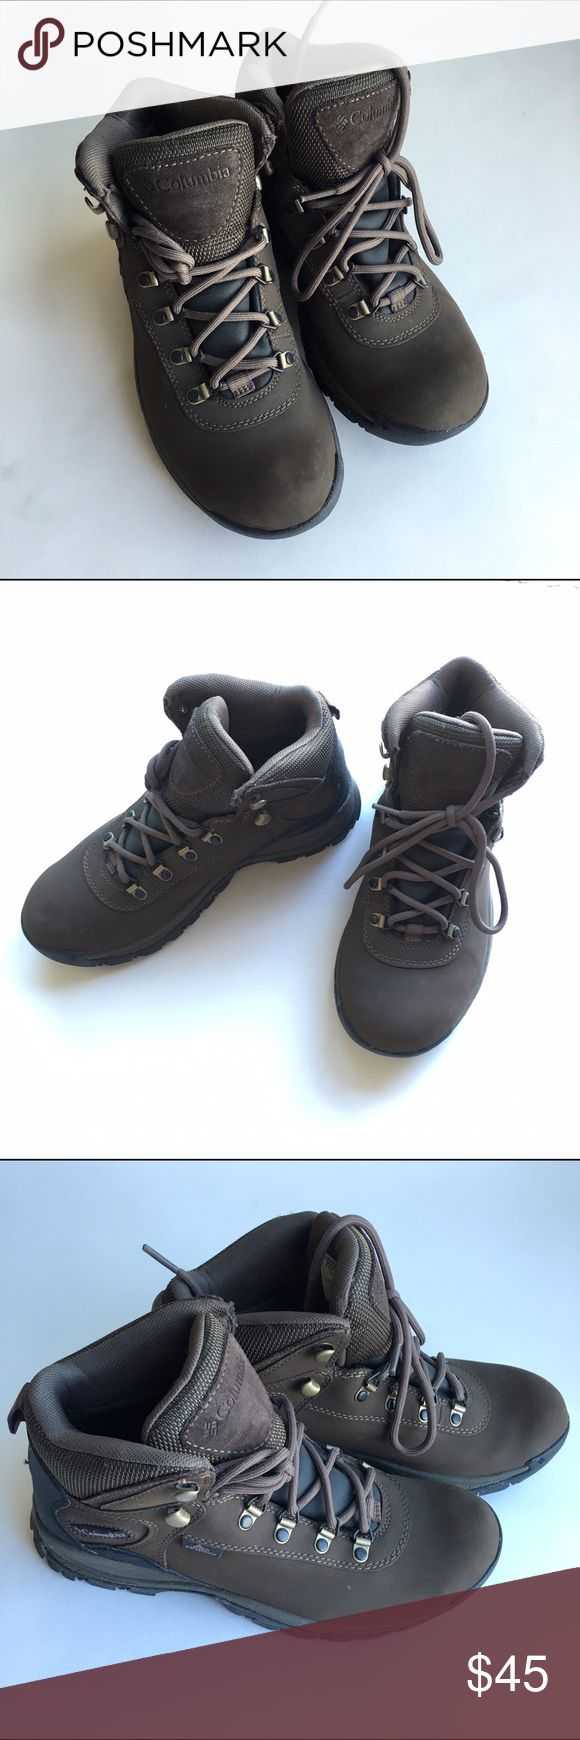 Columbia women's hiking shoes only used once This is almost like brand new used it once it's still very clean. It's size 8 brown and ready to be yours. Columbia Shoes Athletic Shoes